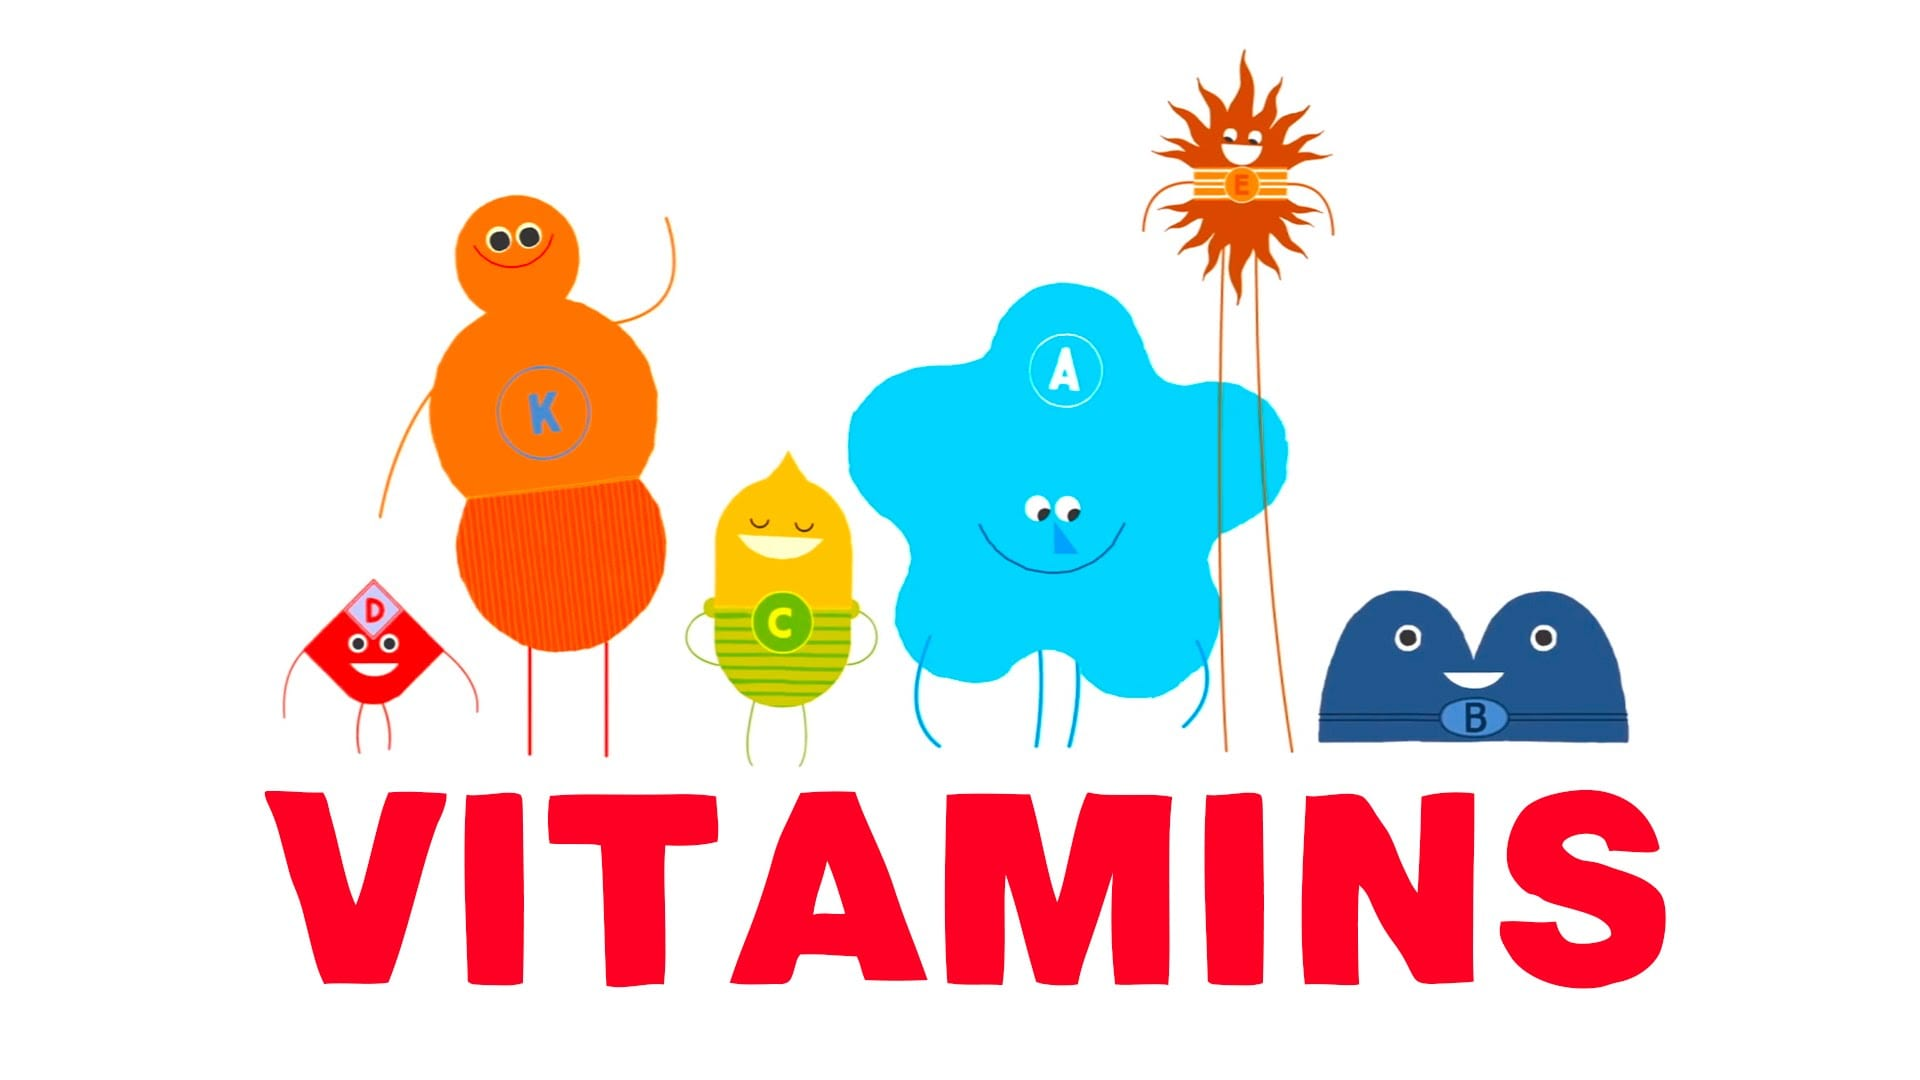 How Do Vitamins Work?